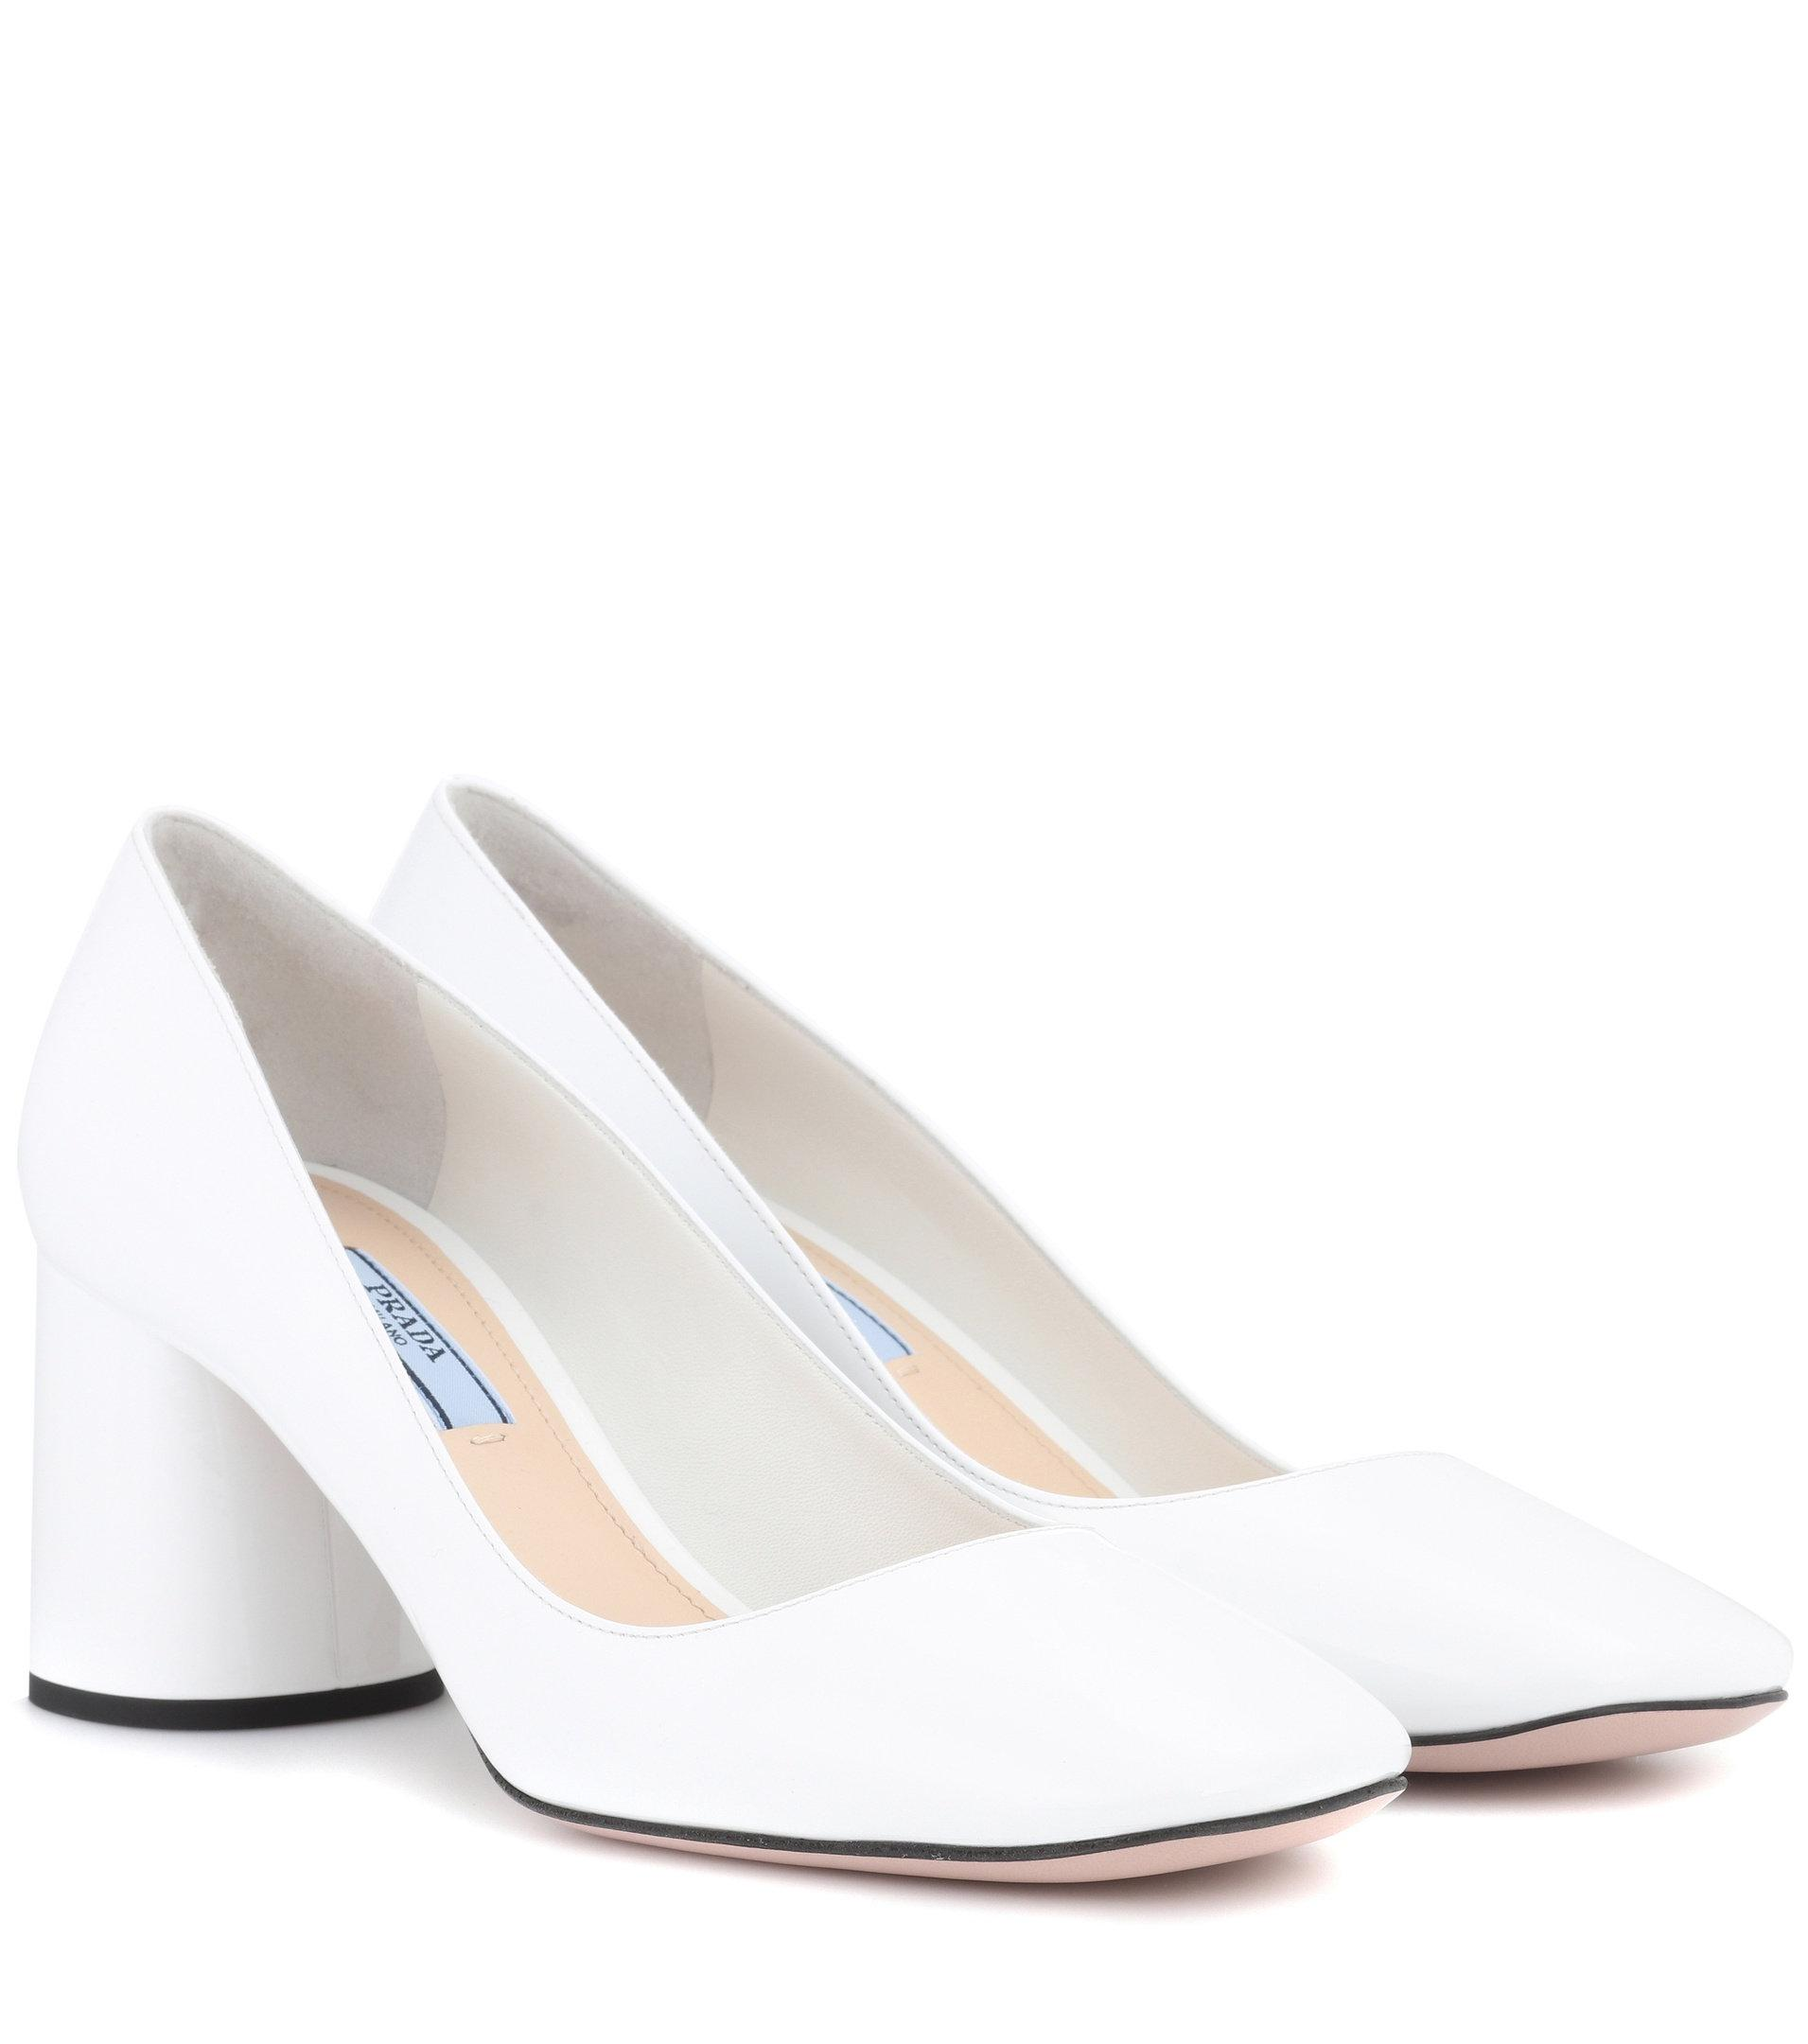 Prada Patent Leather Pumps in White - Lyst